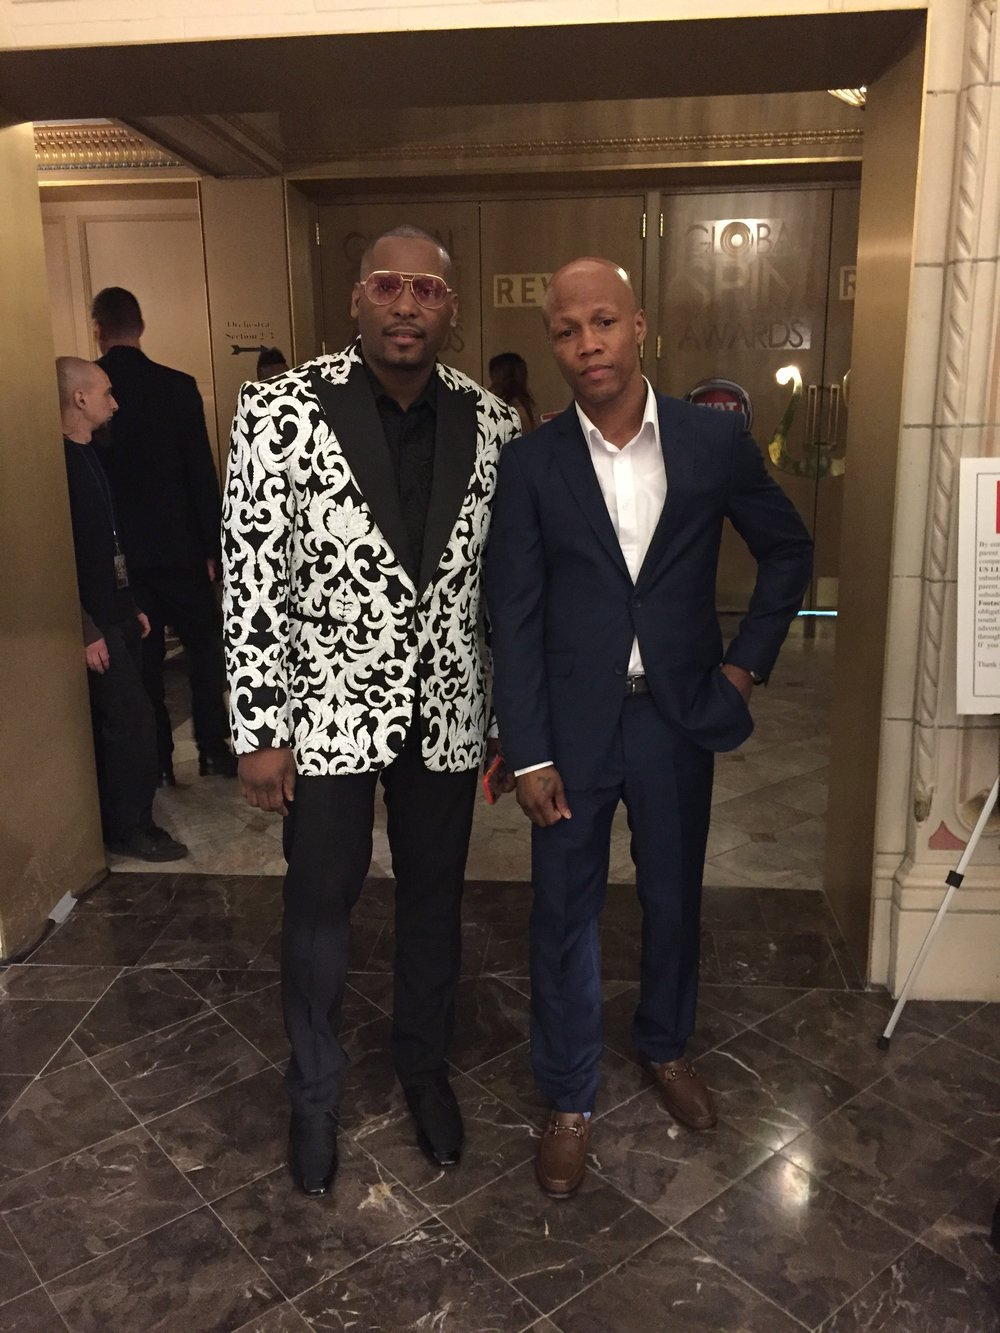 NLSC client Zab Judah & DJ Self at the Revolt Spin Awards during NBA Allstar 2017